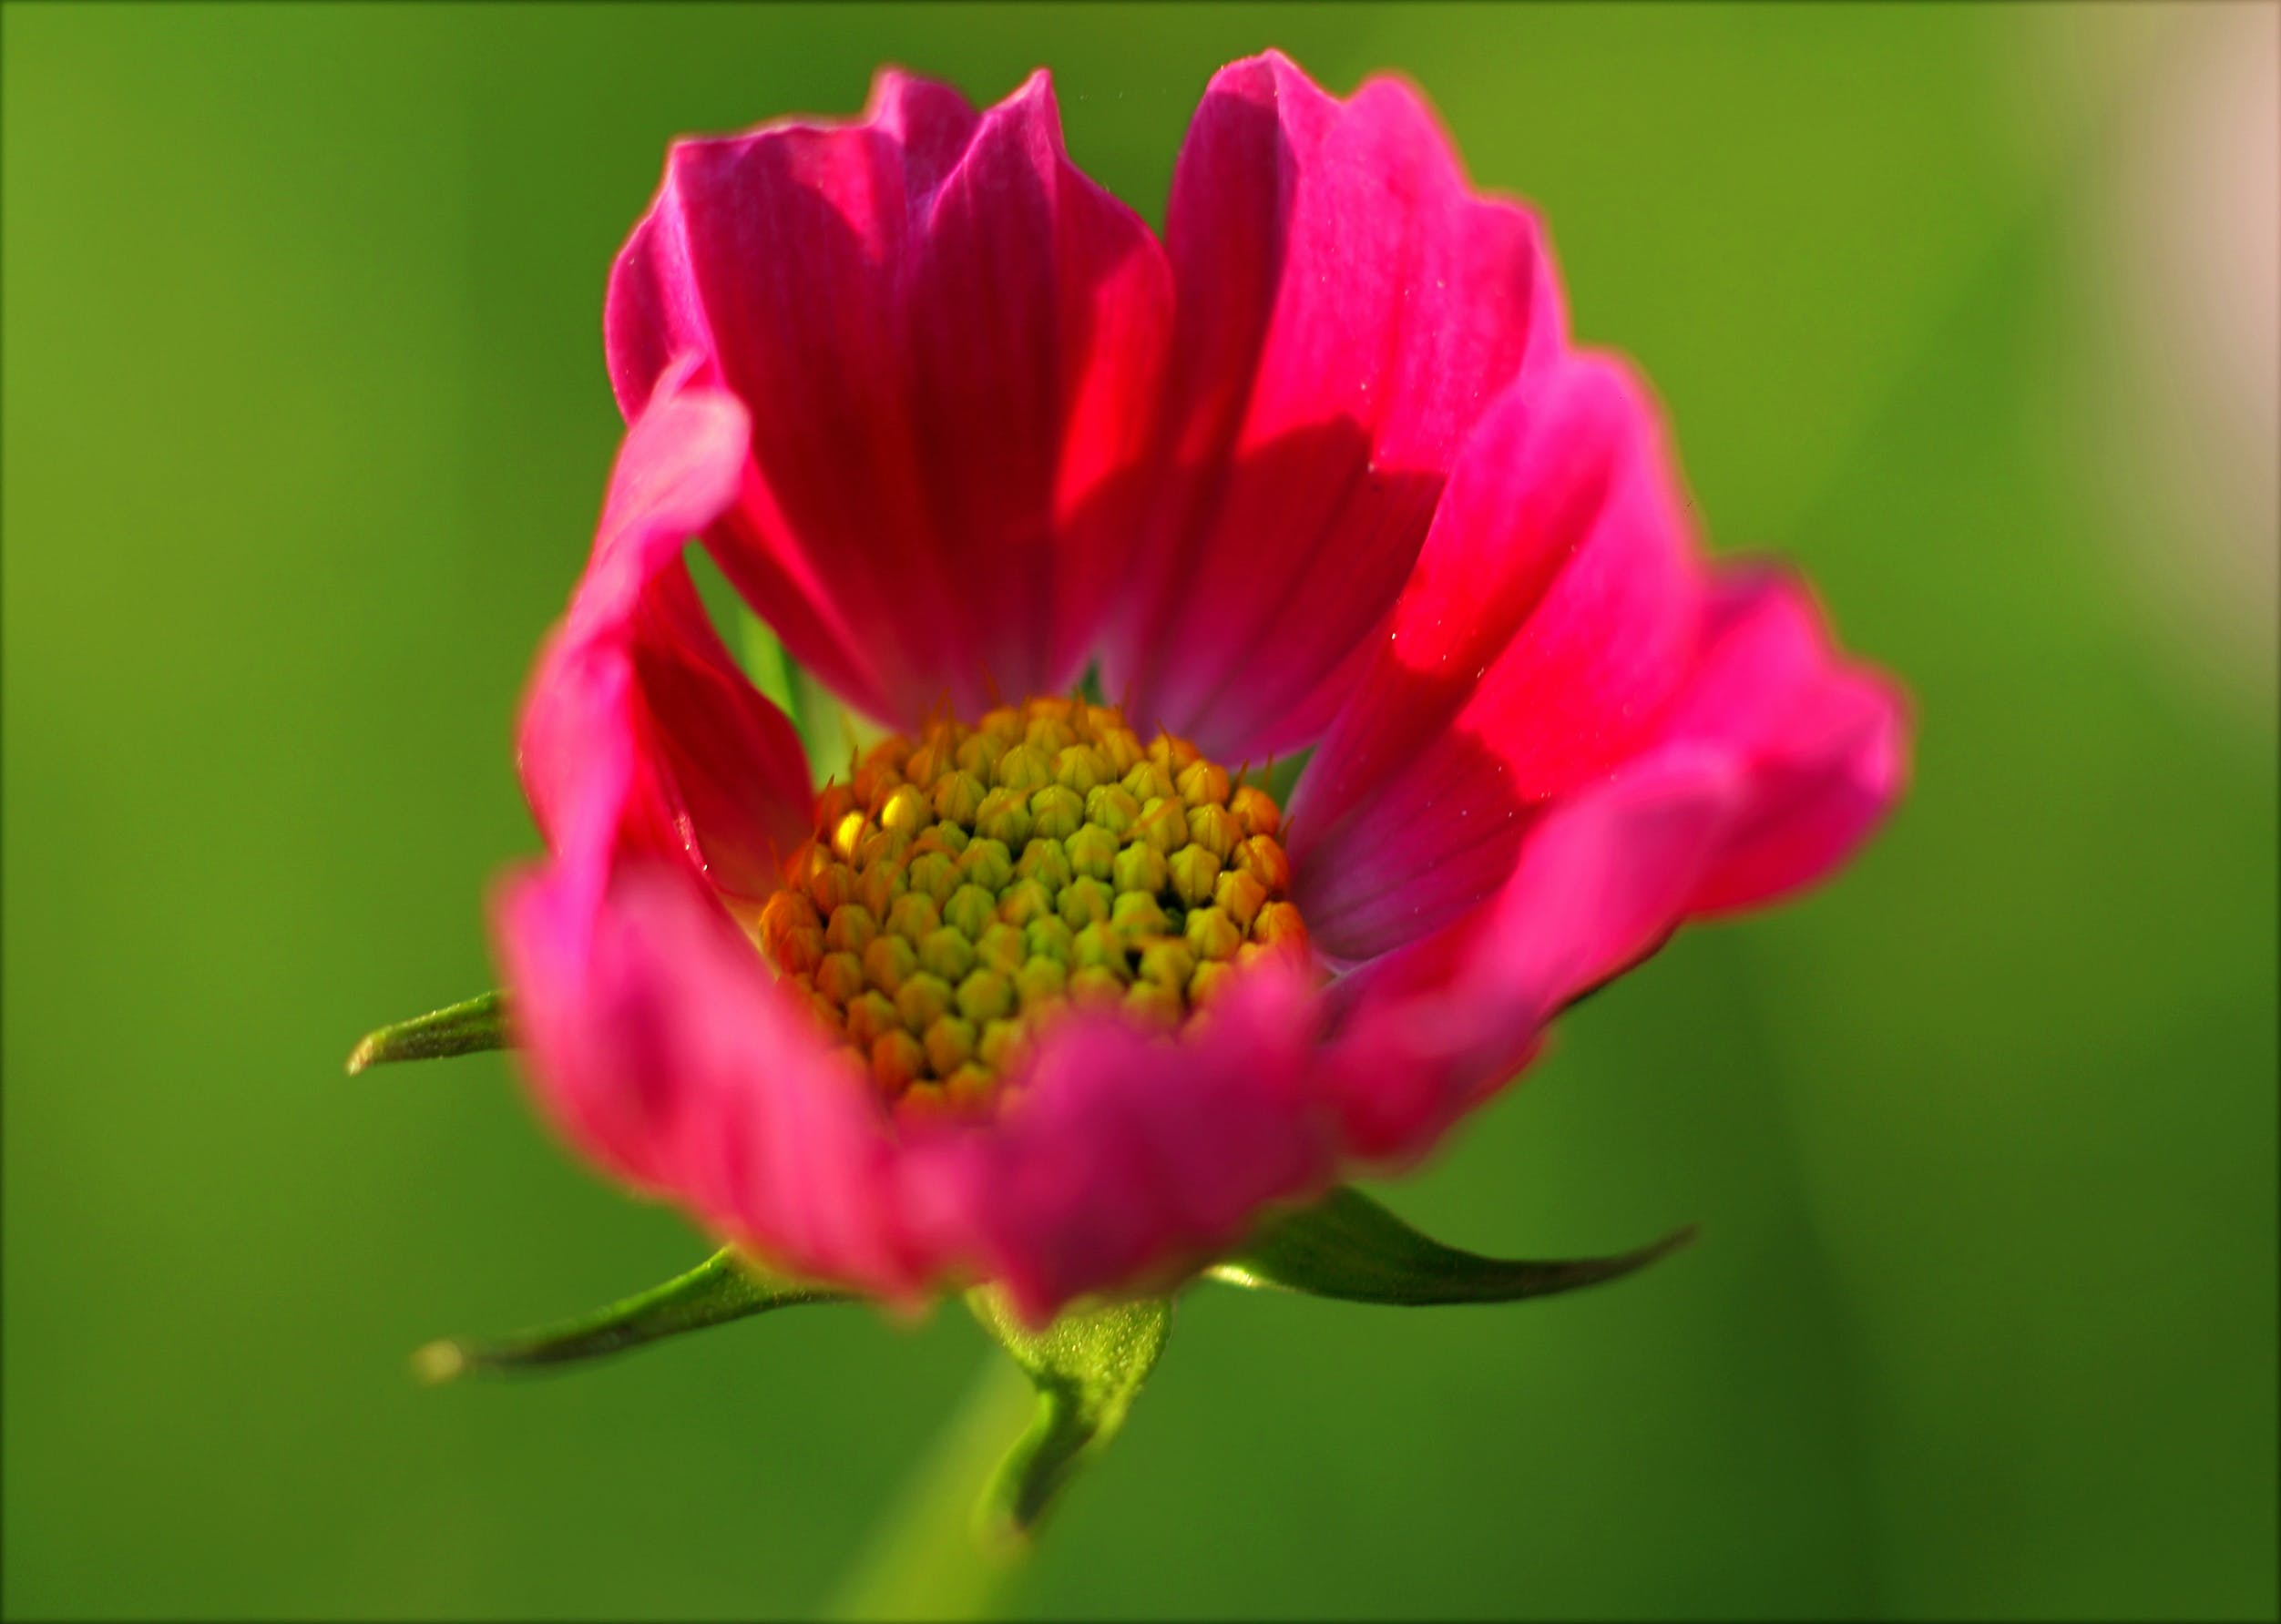 Close-up Photography of Flower